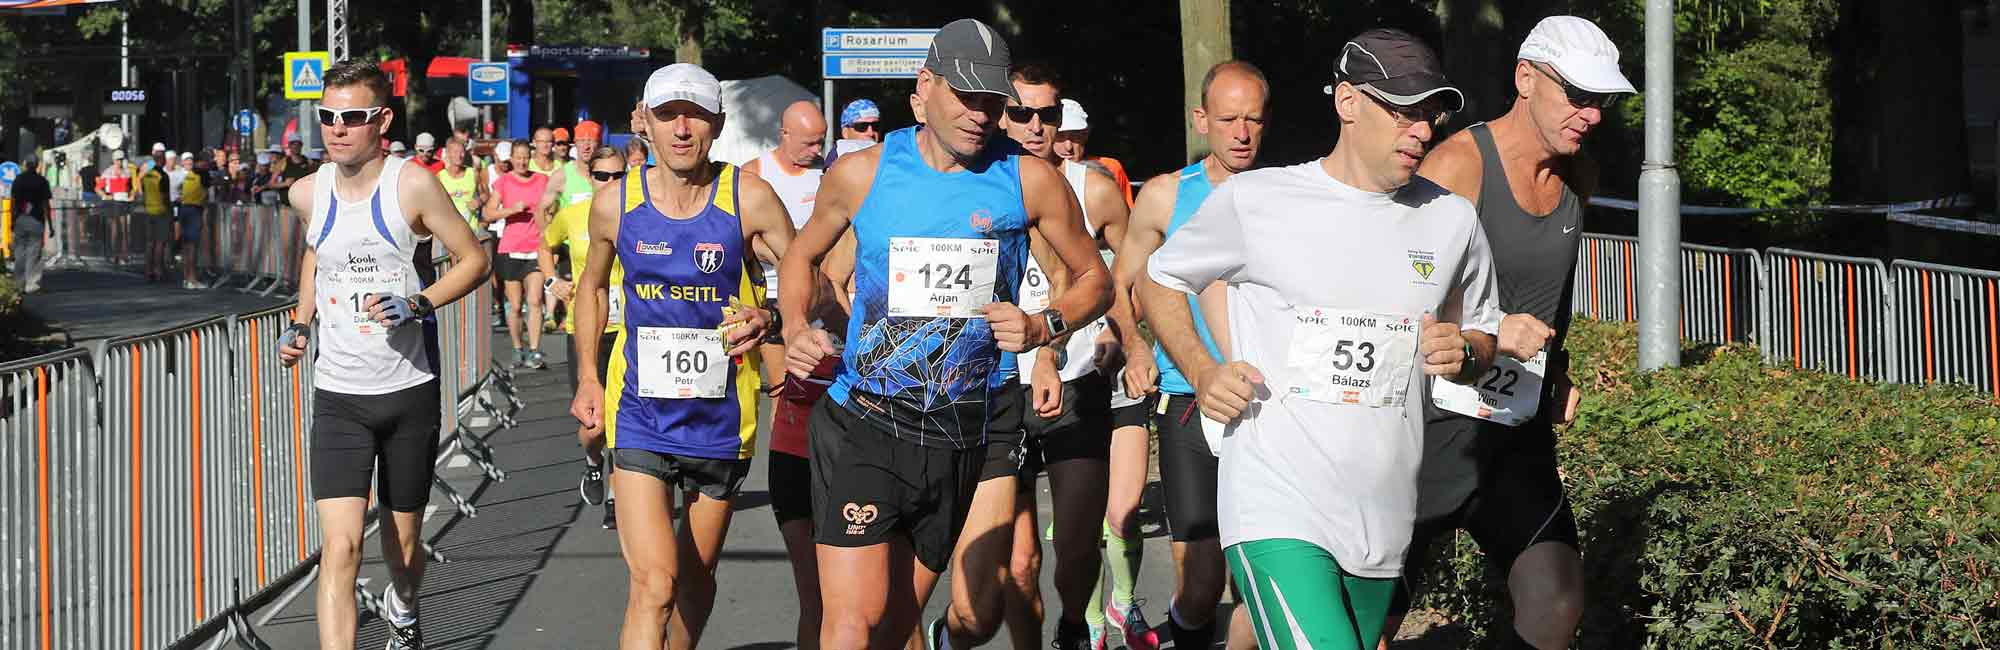 8 september 2018 - RUN Winschoten